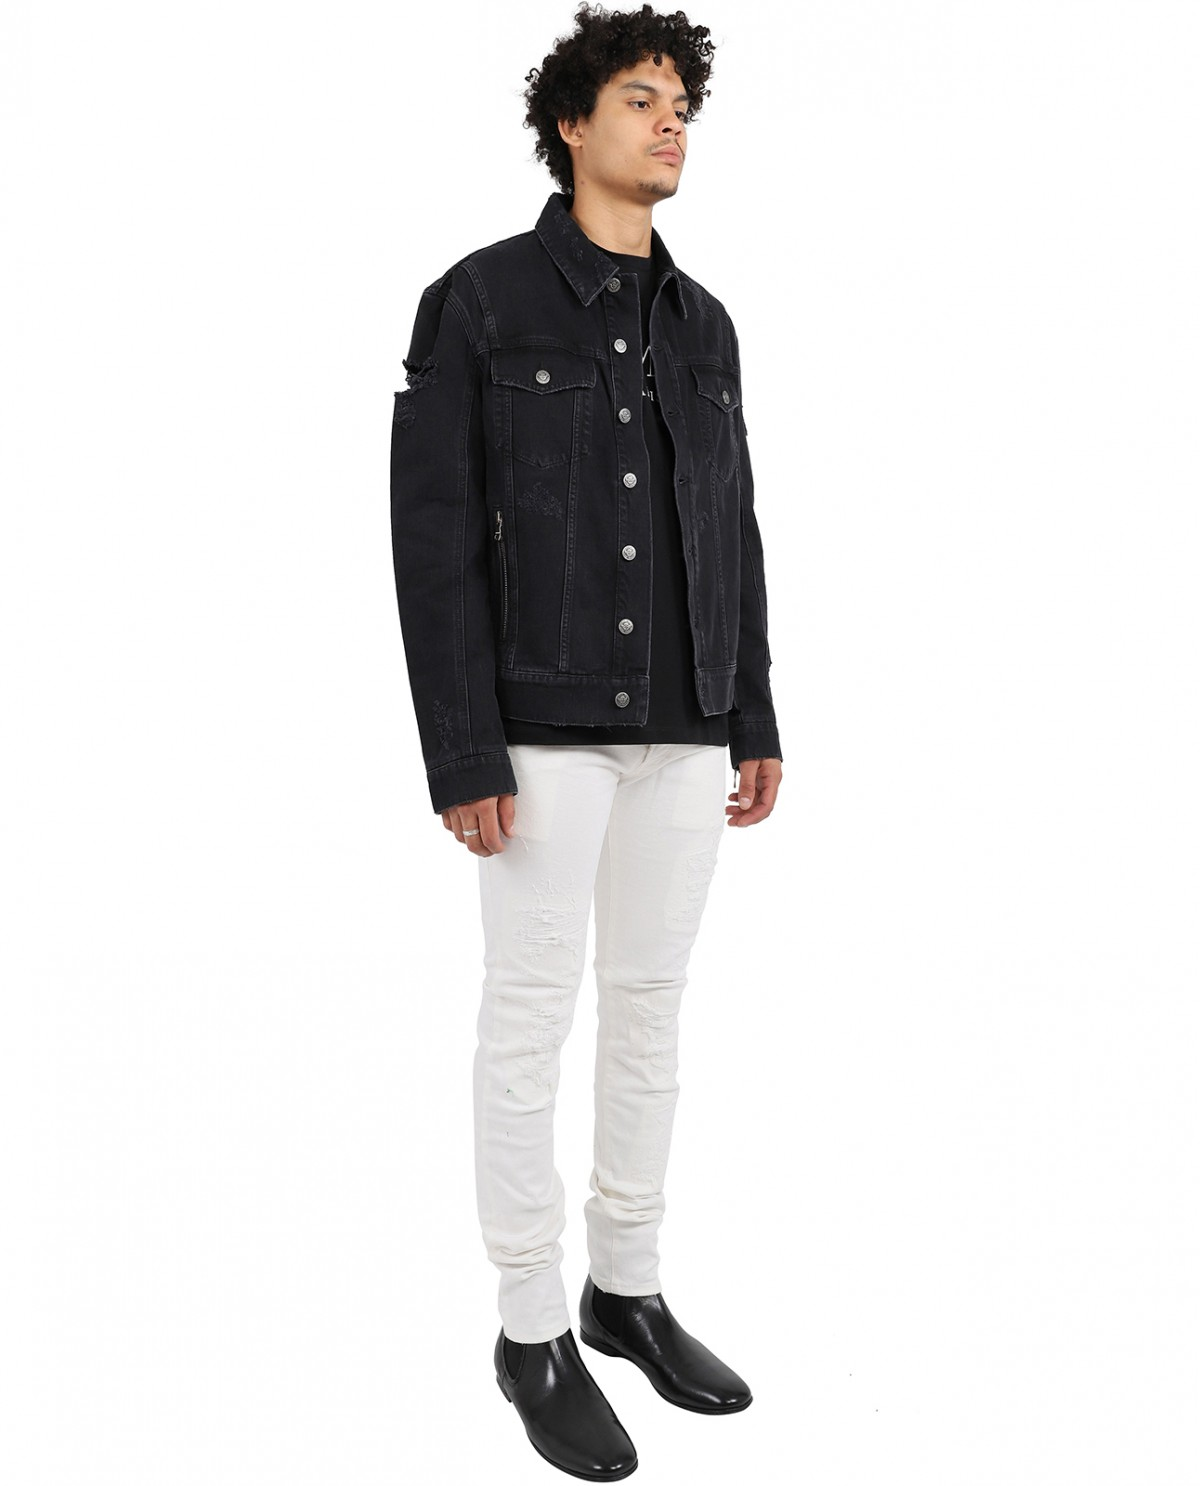 Greg Lauren sailor track jacket